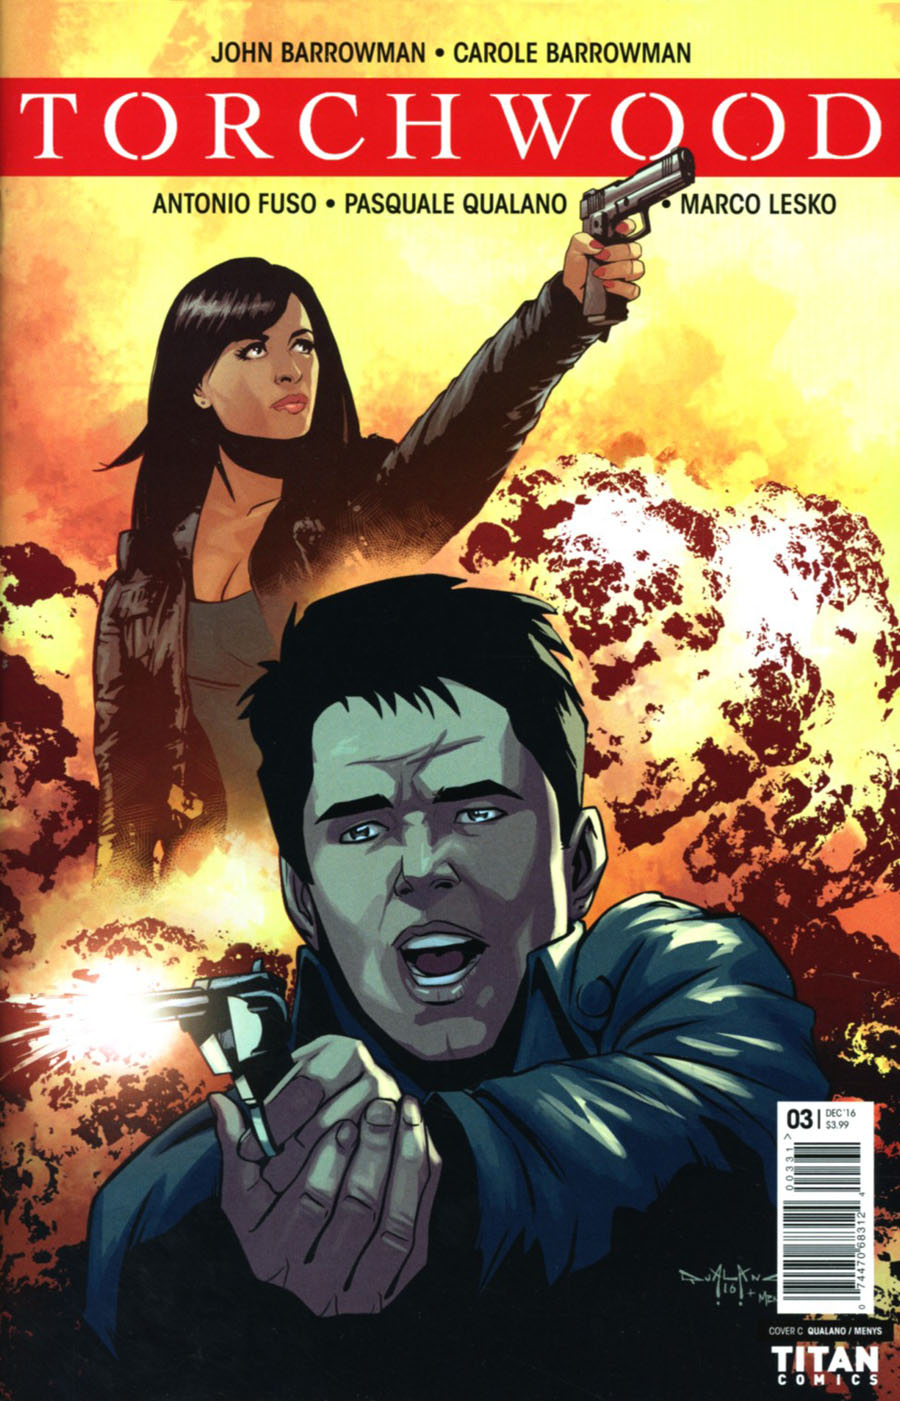 Torchwood Vol 2 #3 Cover C Variant Pasquale Qualano Cover